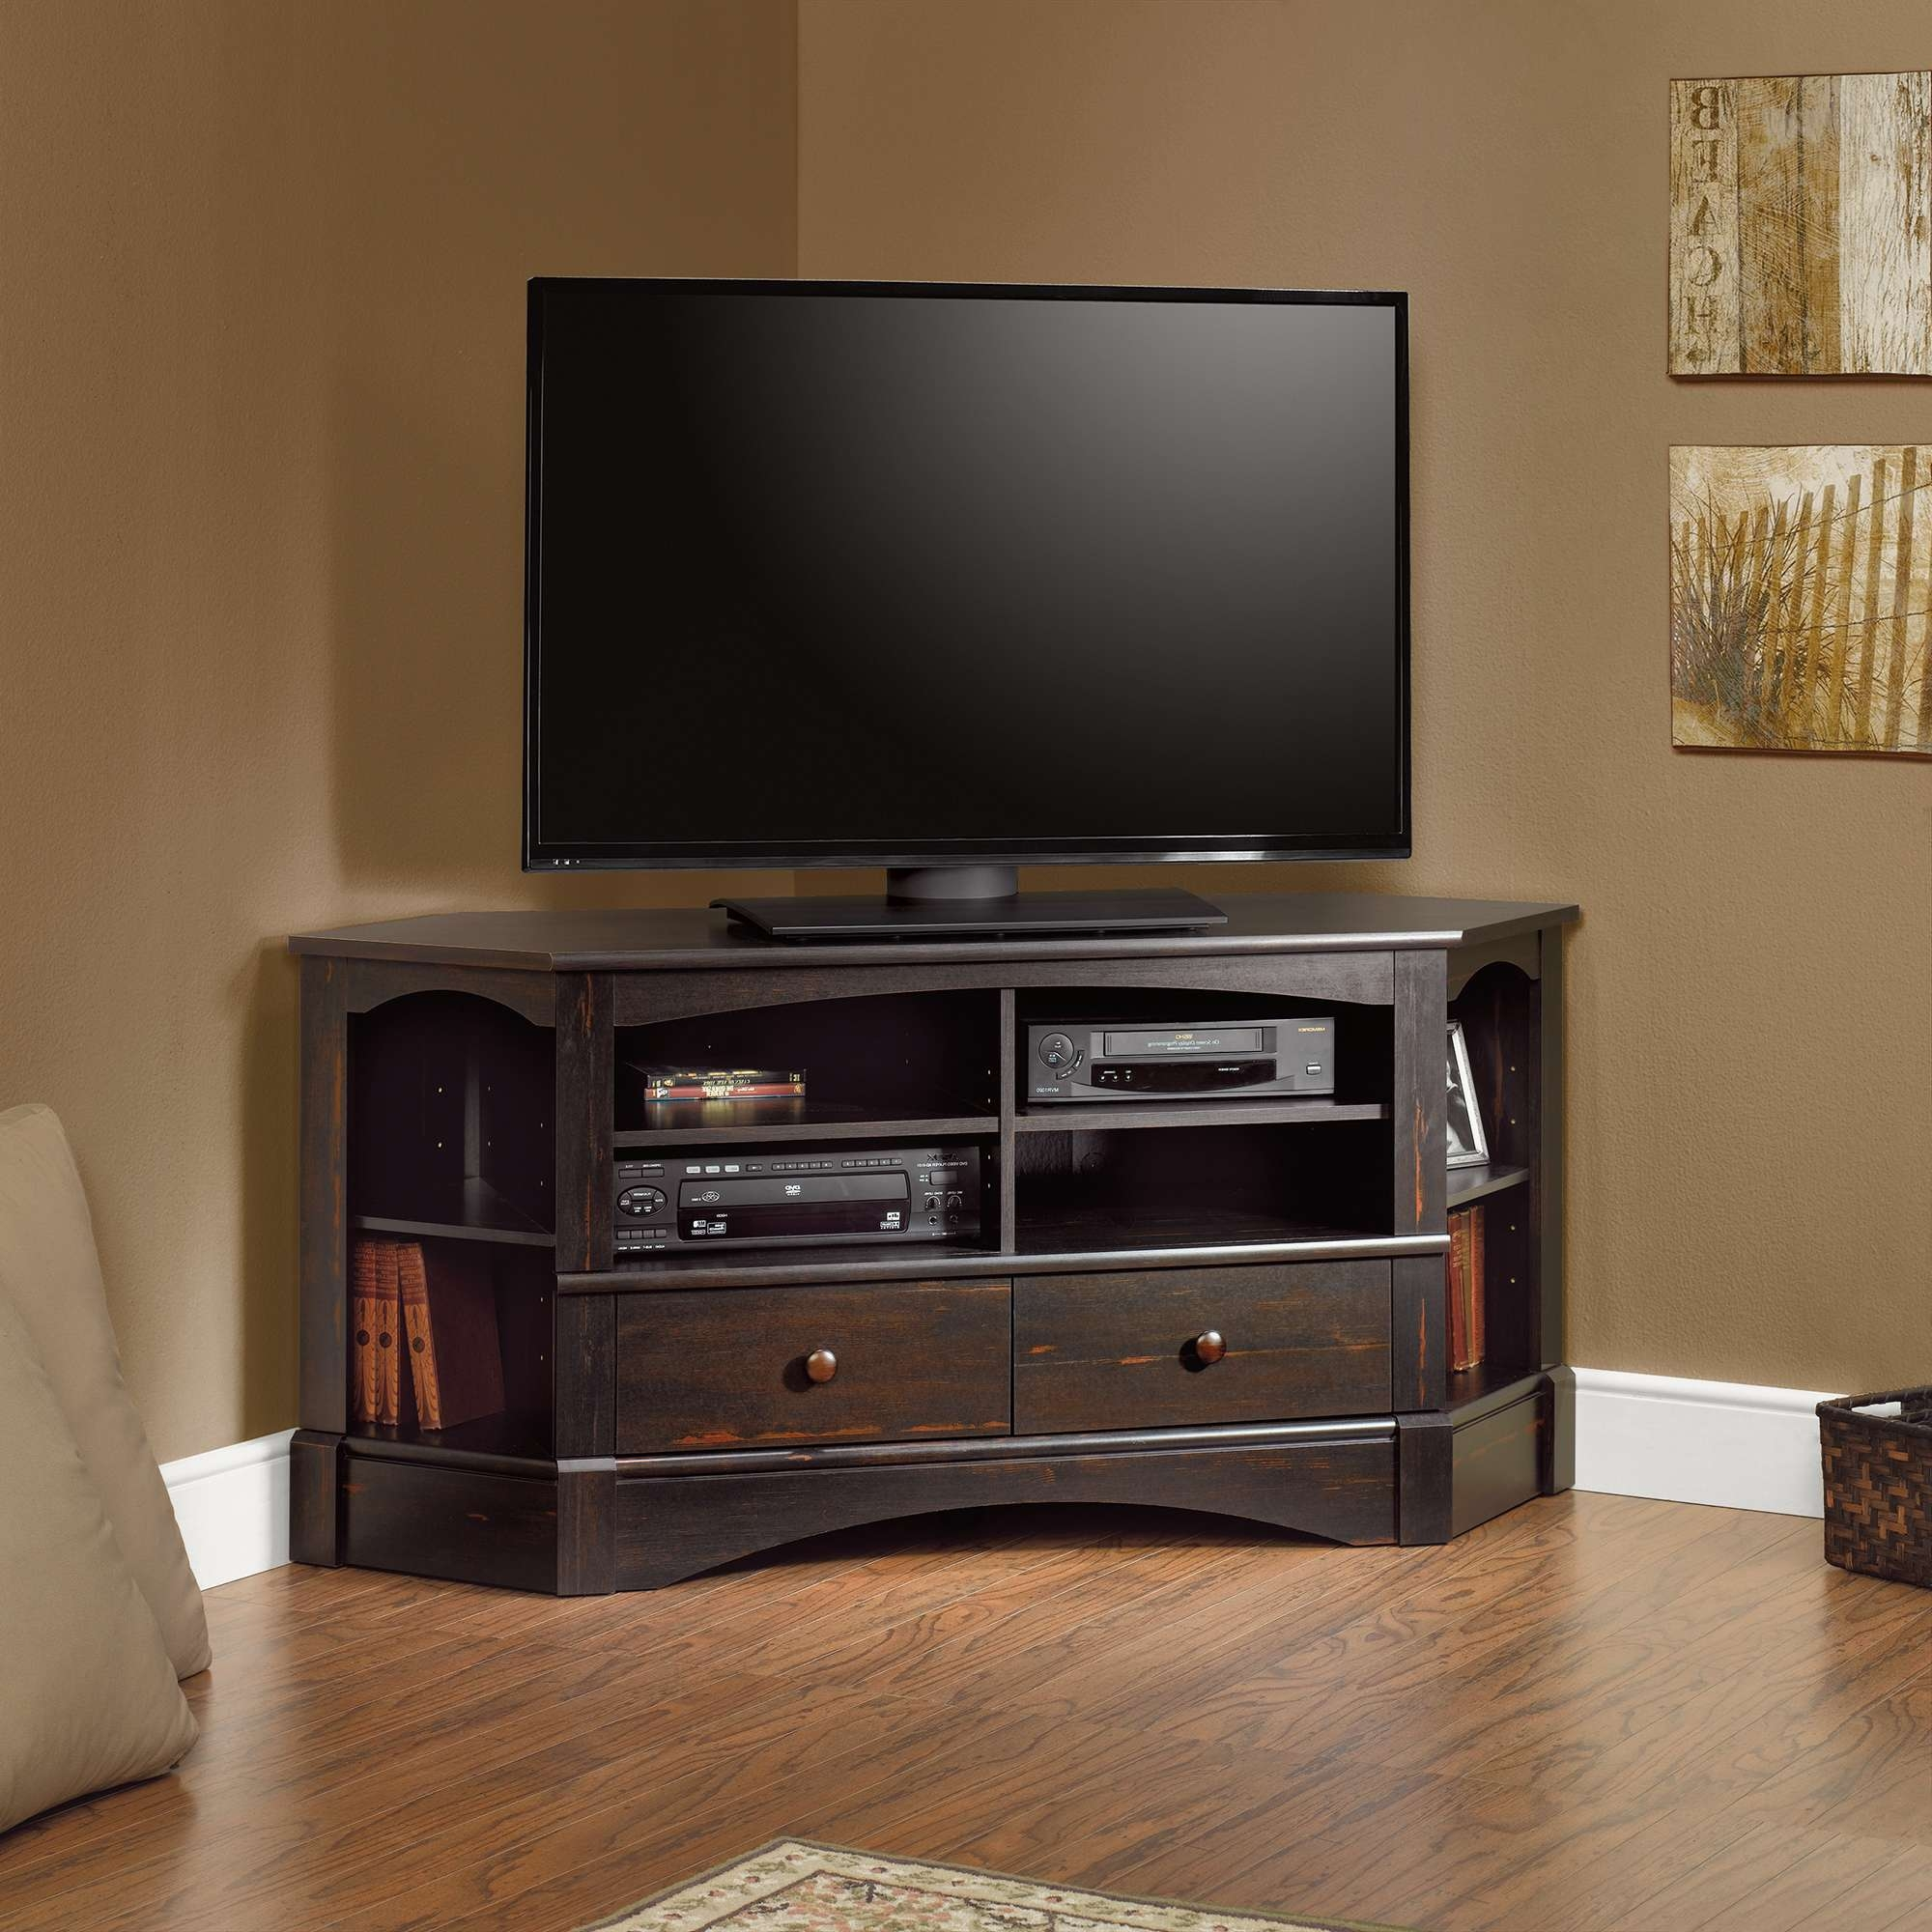 Fancy Matte Varnished Dark Oak Wood Tall Corner Tv Stand For With Dark Brown Corner Tv Stands (View 4 of 15)